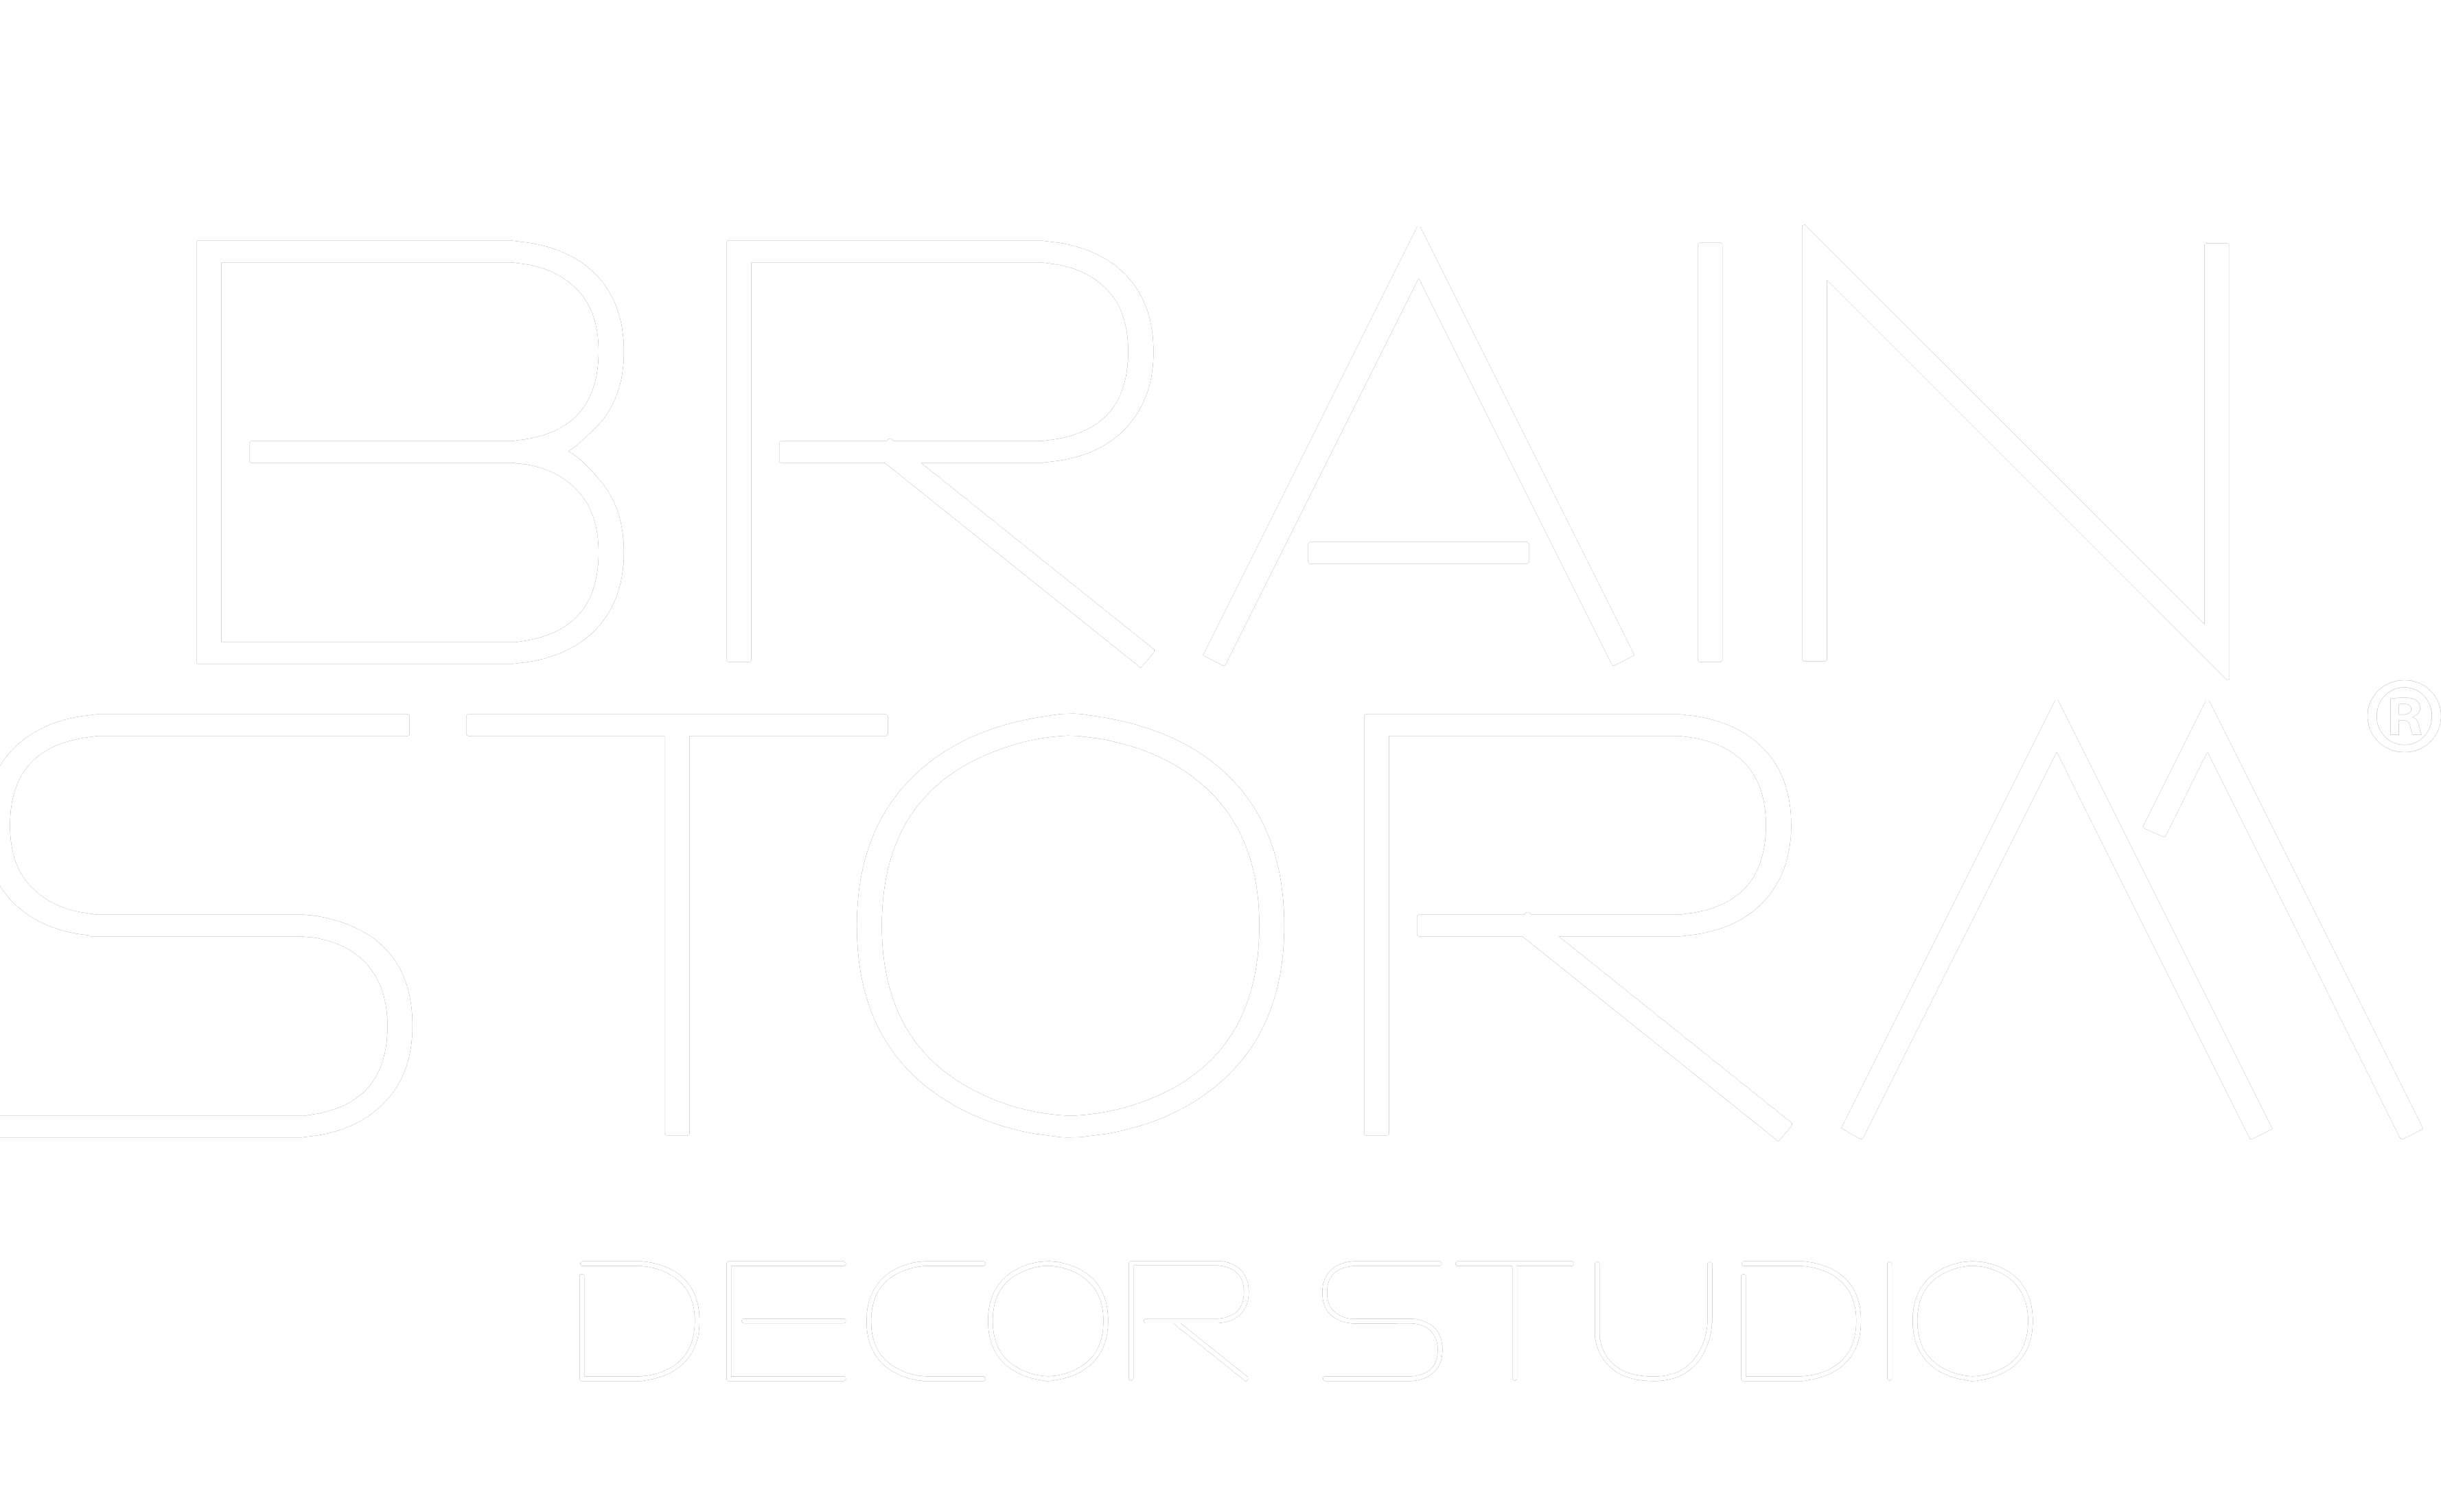 BRAINSTORM Decor Studio